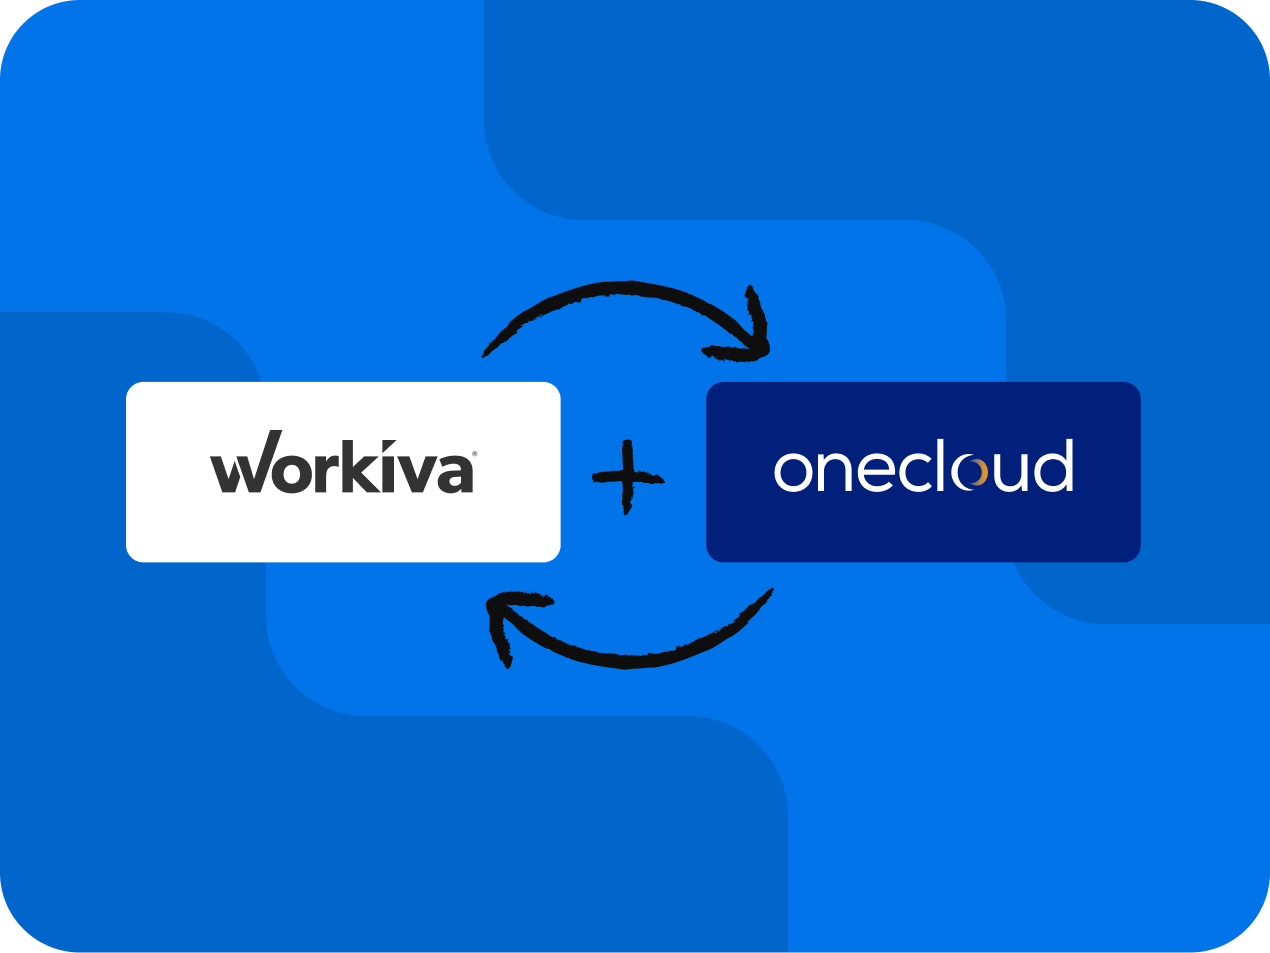 Workiva and OneCloud